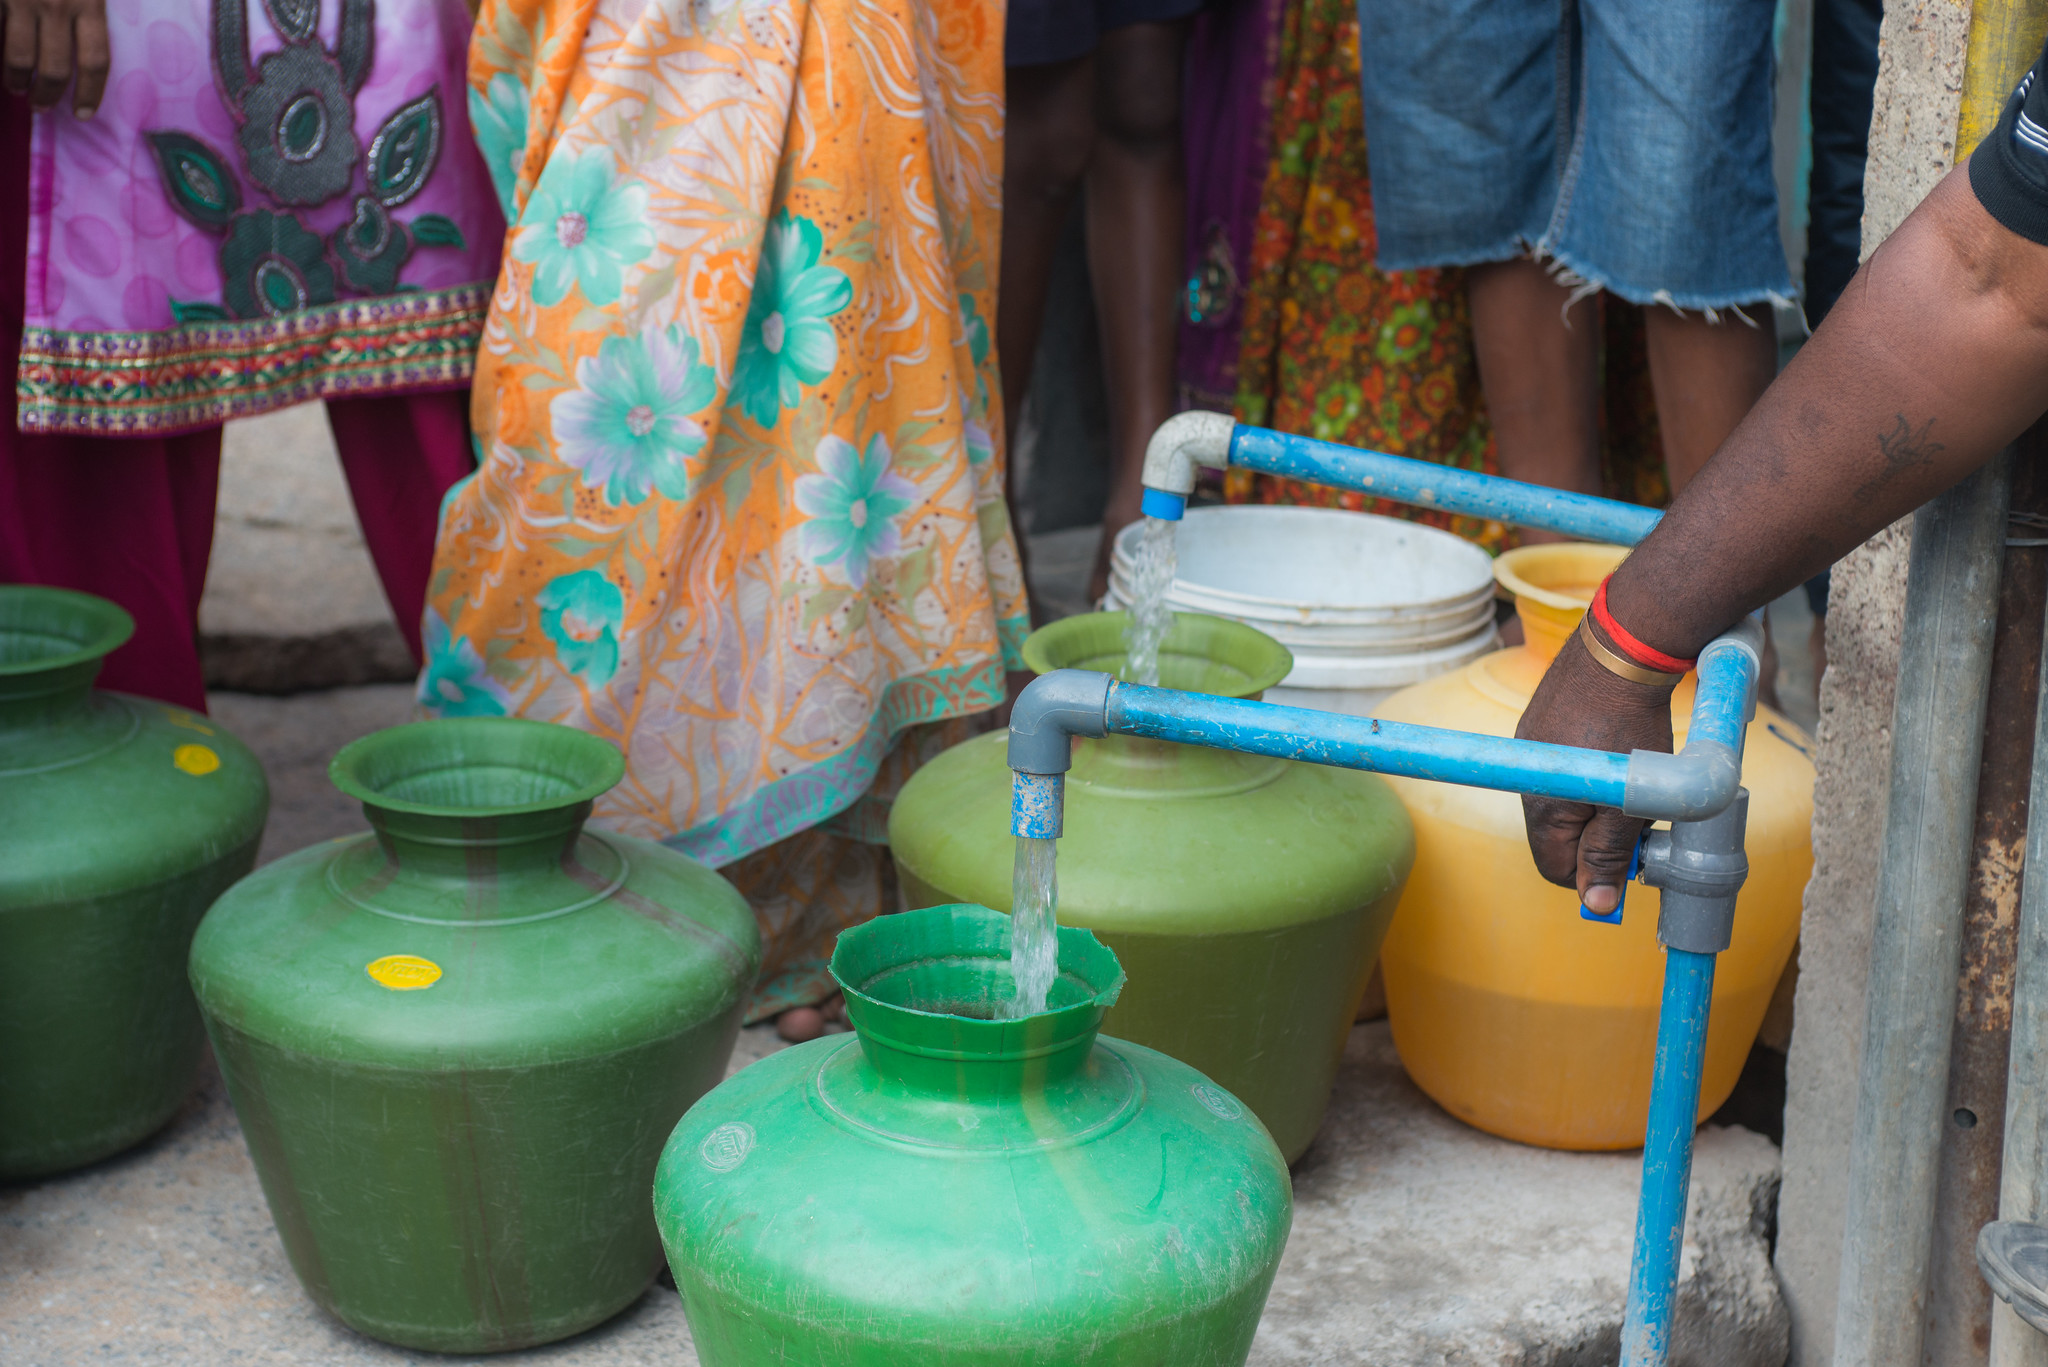 Access to Water and Sanitation is Critical During the COVID-19 Pandemic